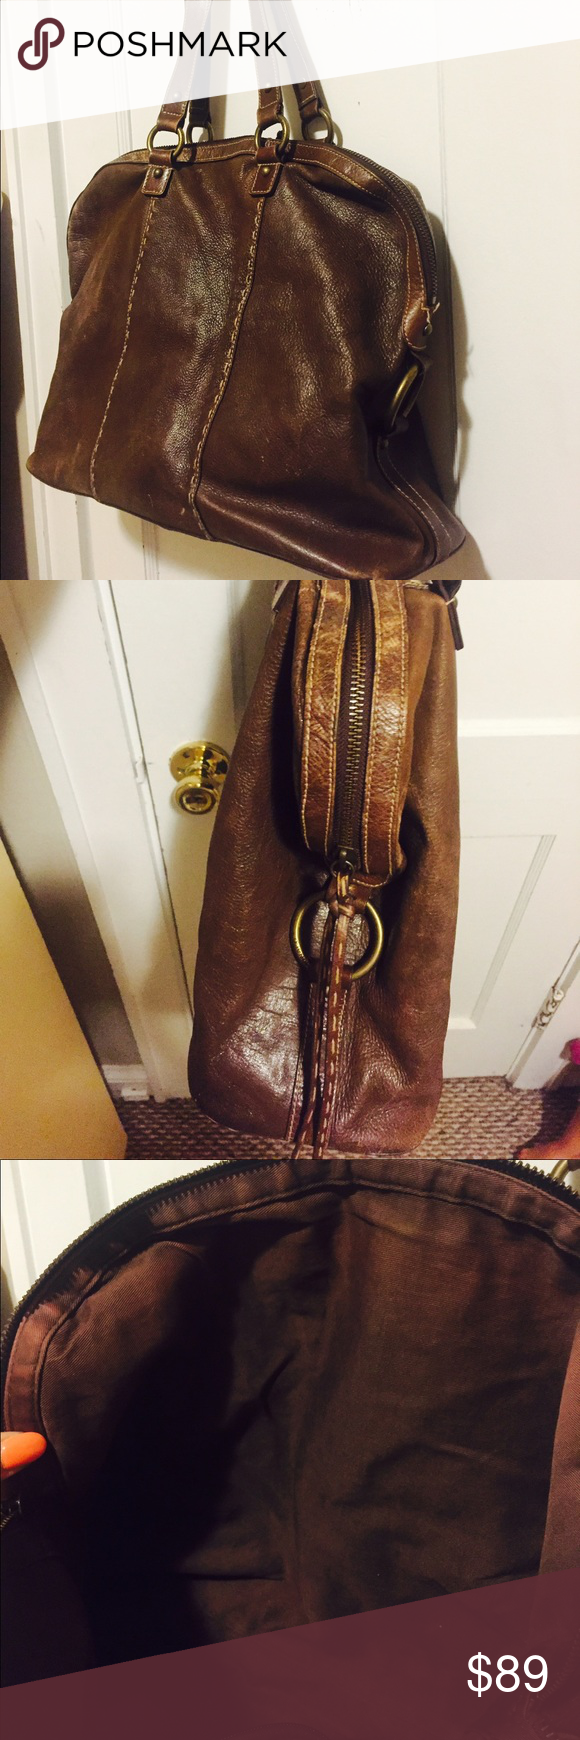 """Club Monaco large leather bag Great condition some fading interior but absolutely gorgeous bag .. 13"""" x 16"""" with 10"""" strap drop Club Monaco Bags Hobos"""